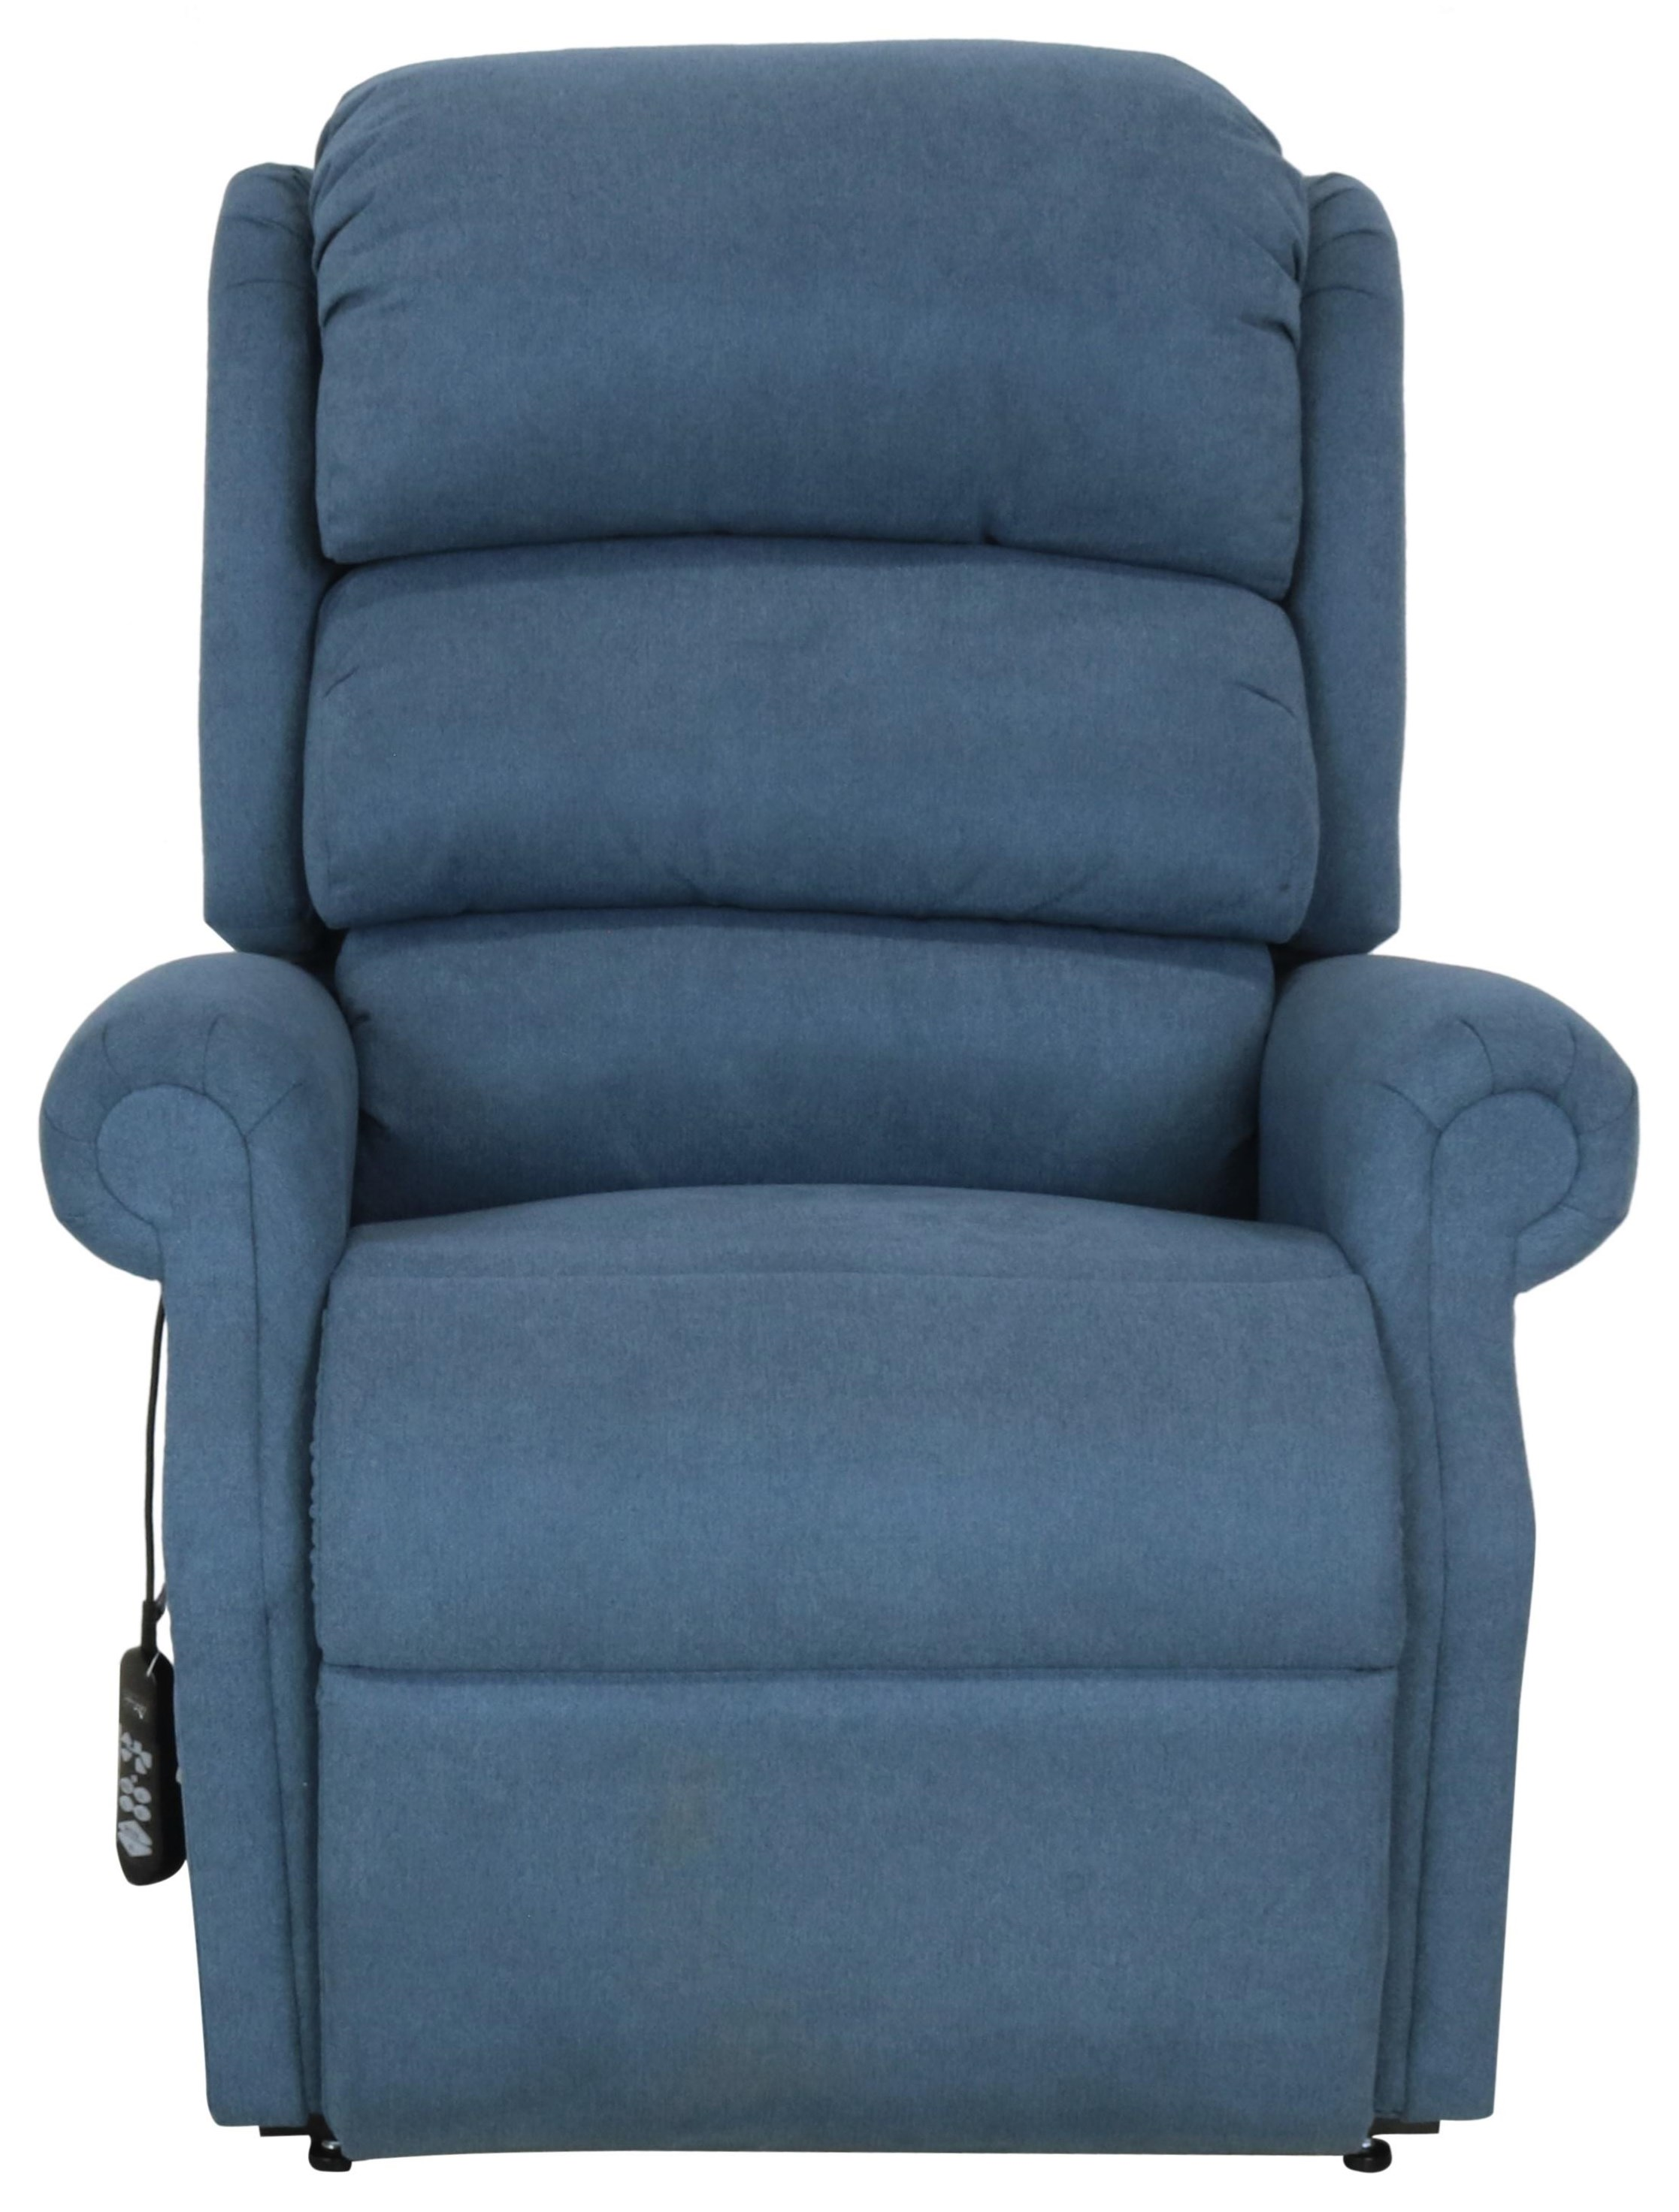 StellarComfort Large Power Lift Chair Recliner by UltraComfort at Sprintz Furniture